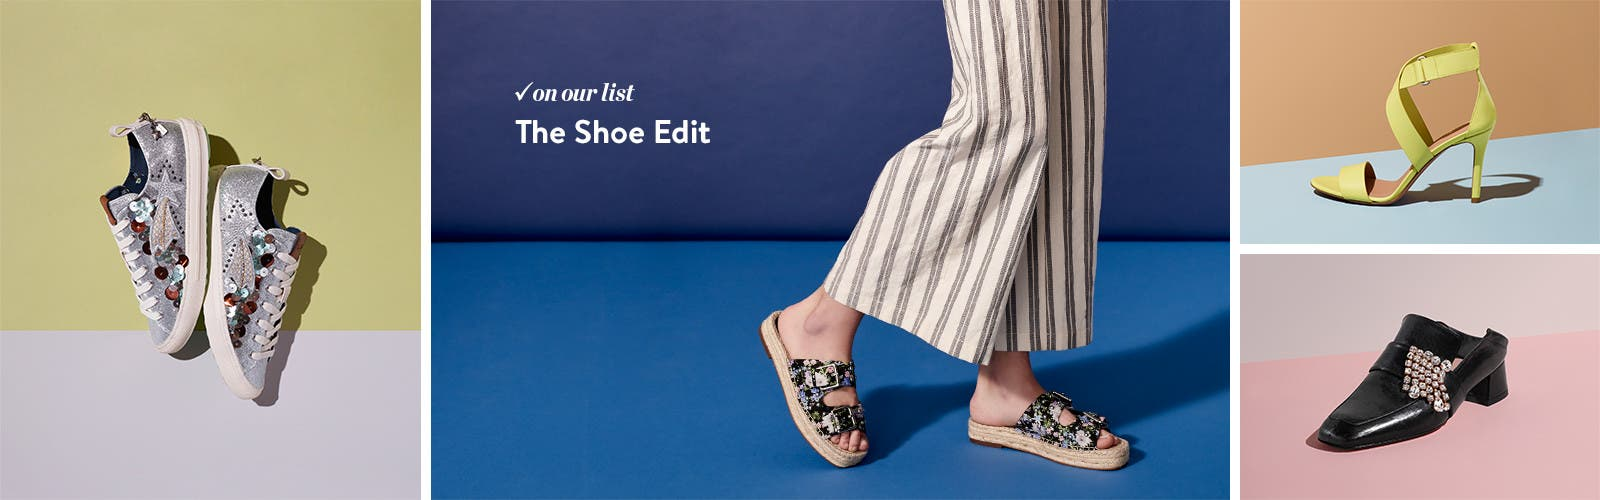 The shoe edit: women's trends.